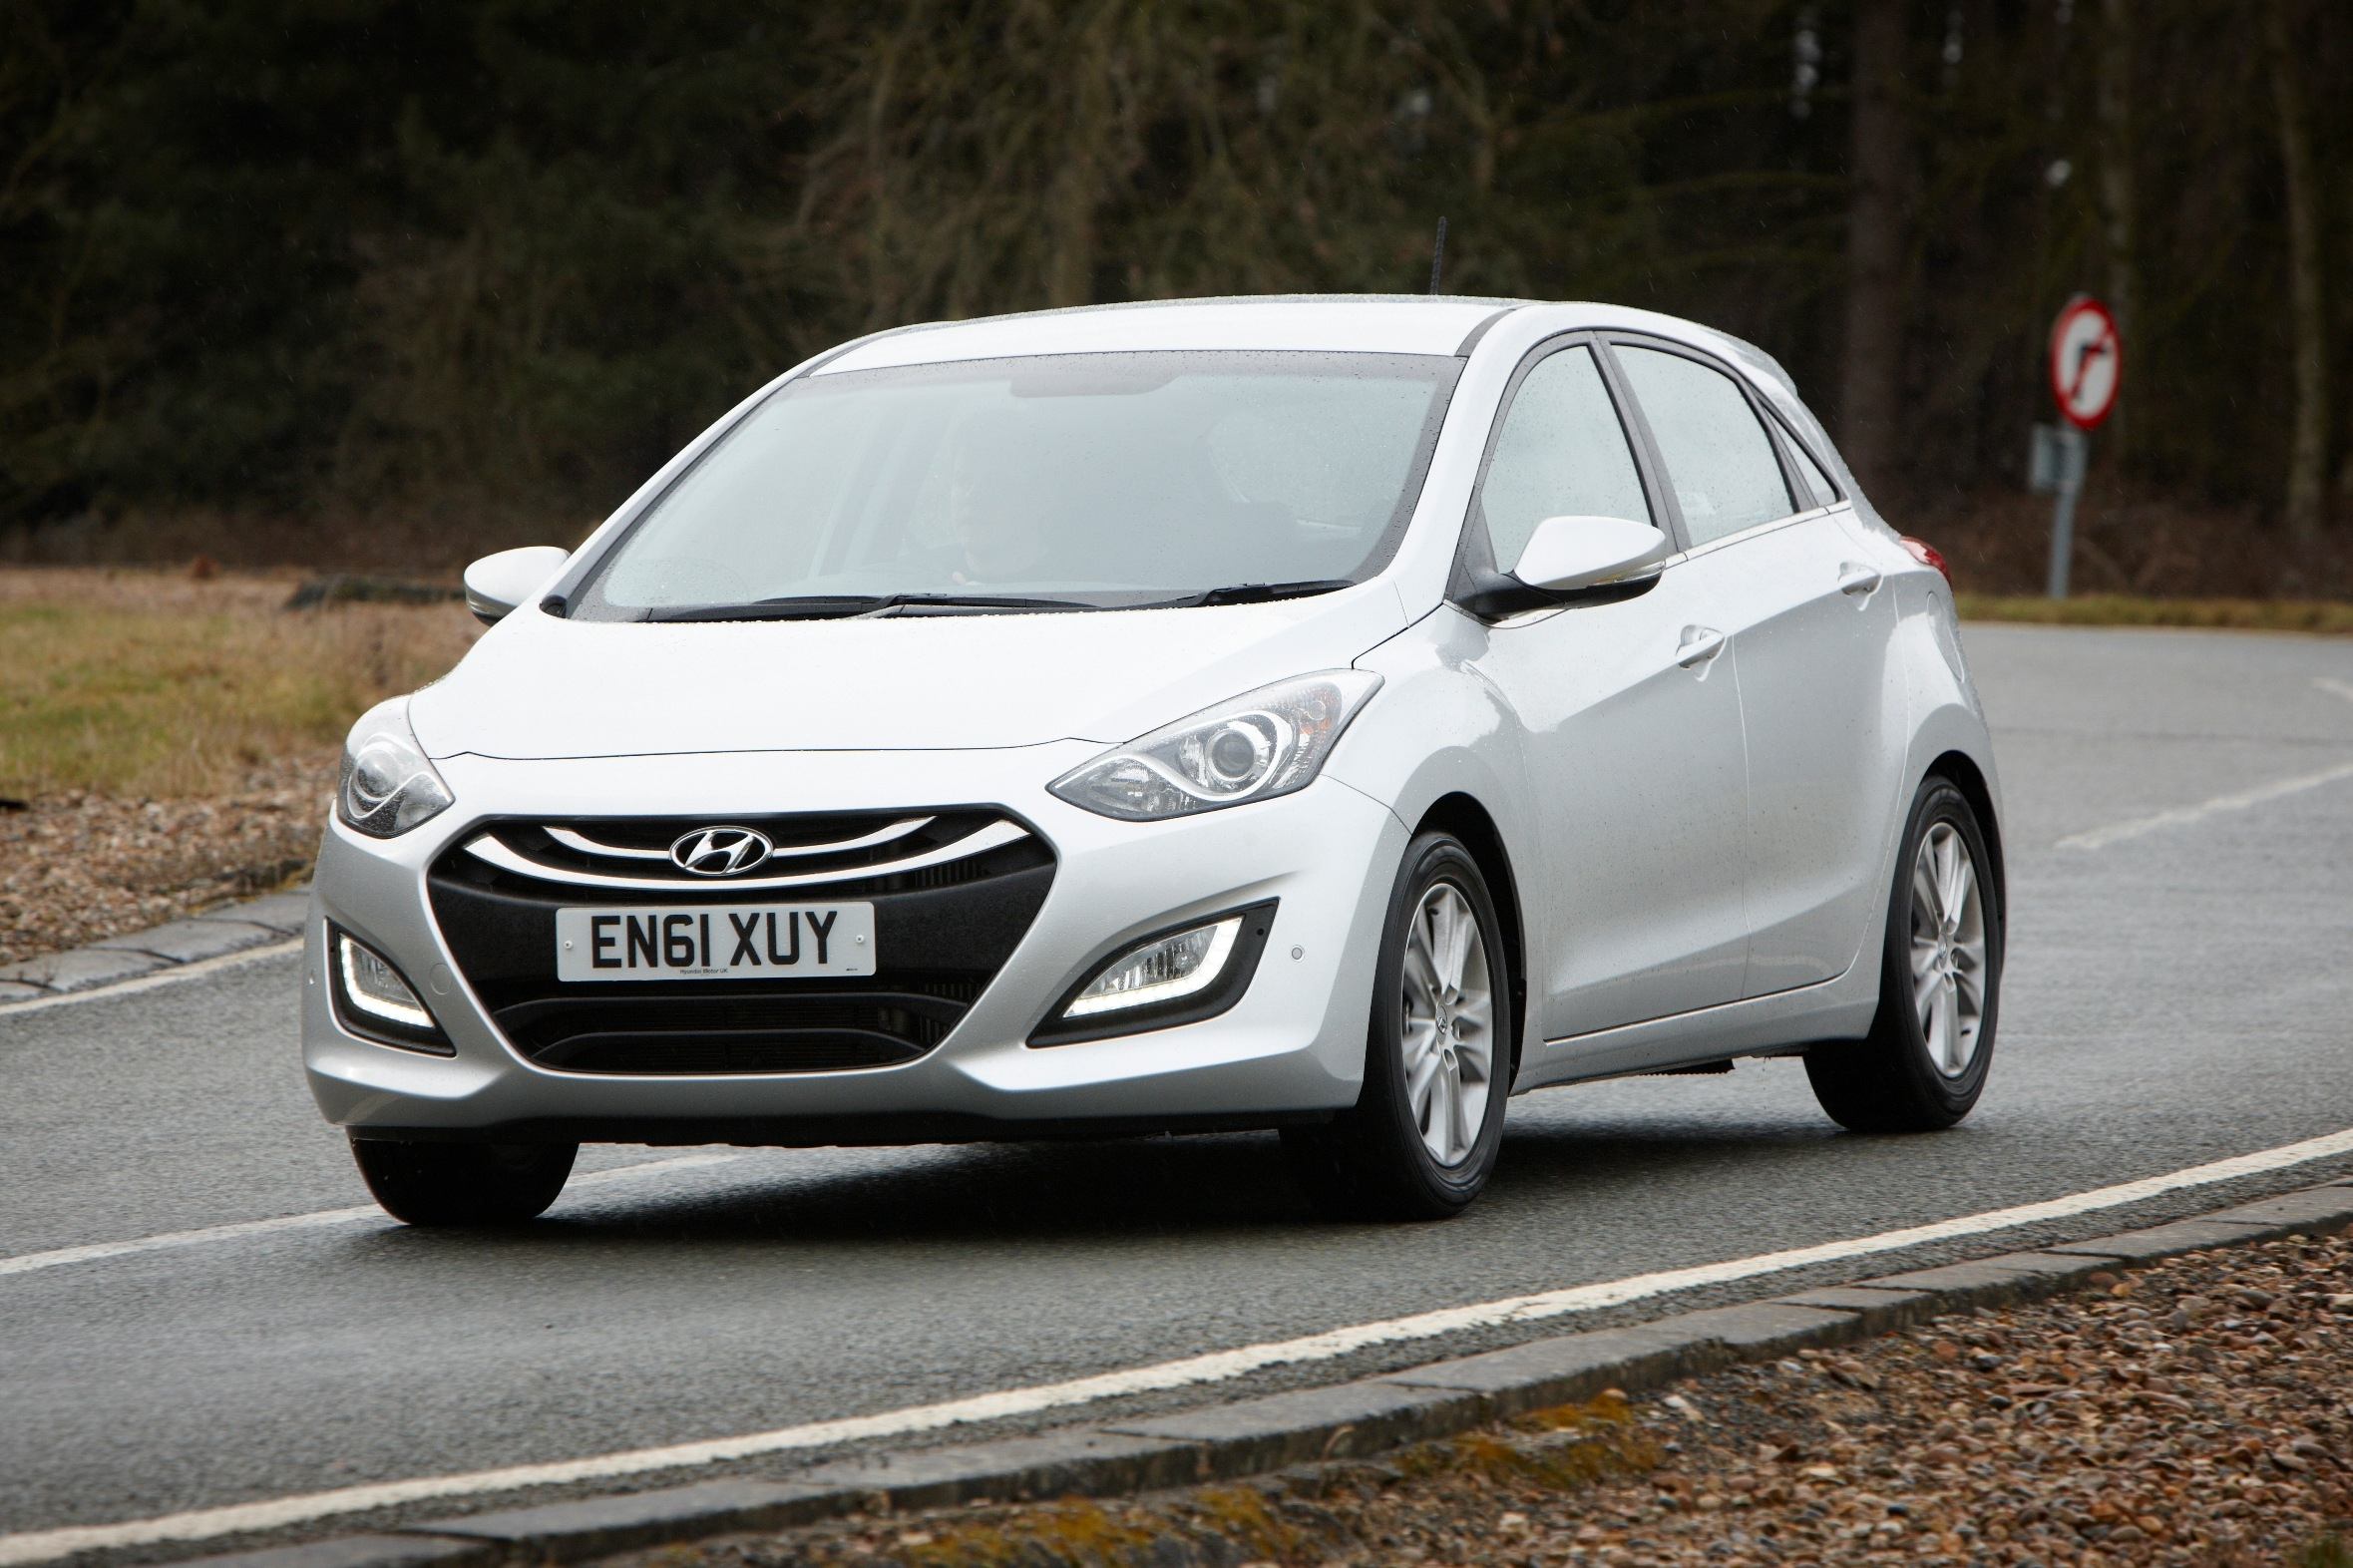 new hyundai i30 looks a great business car bet business. Black Bedroom Furniture Sets. Home Design Ideas